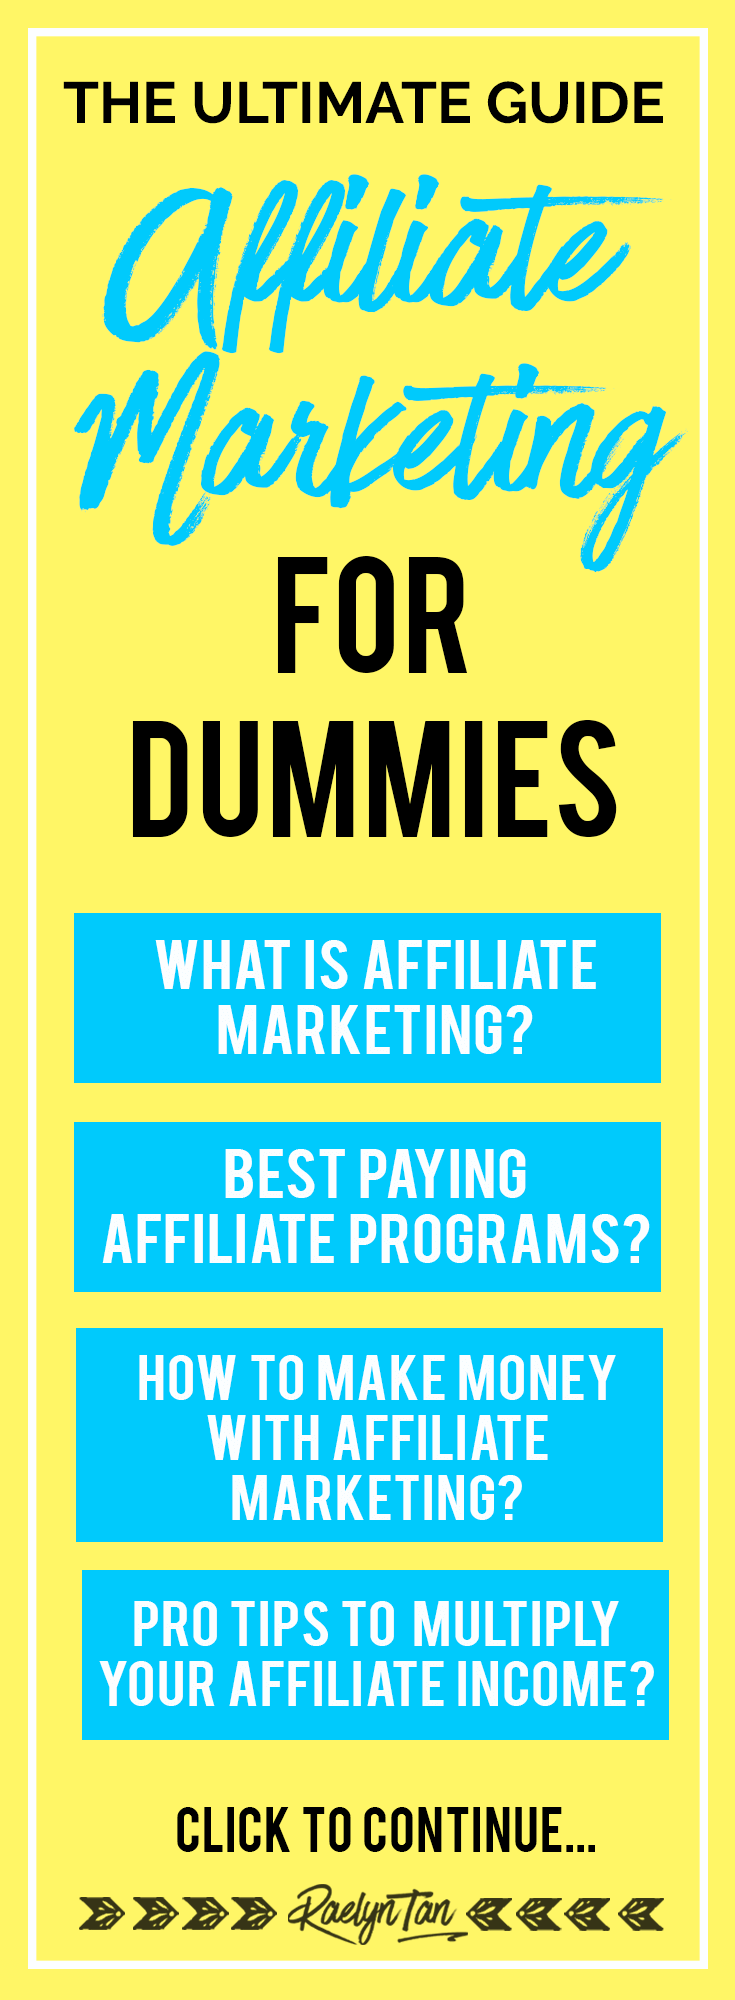 Affiliate Marketing For Dummies: The ultimate guide for the best affiliate marketing tips and programs to make money from your website.